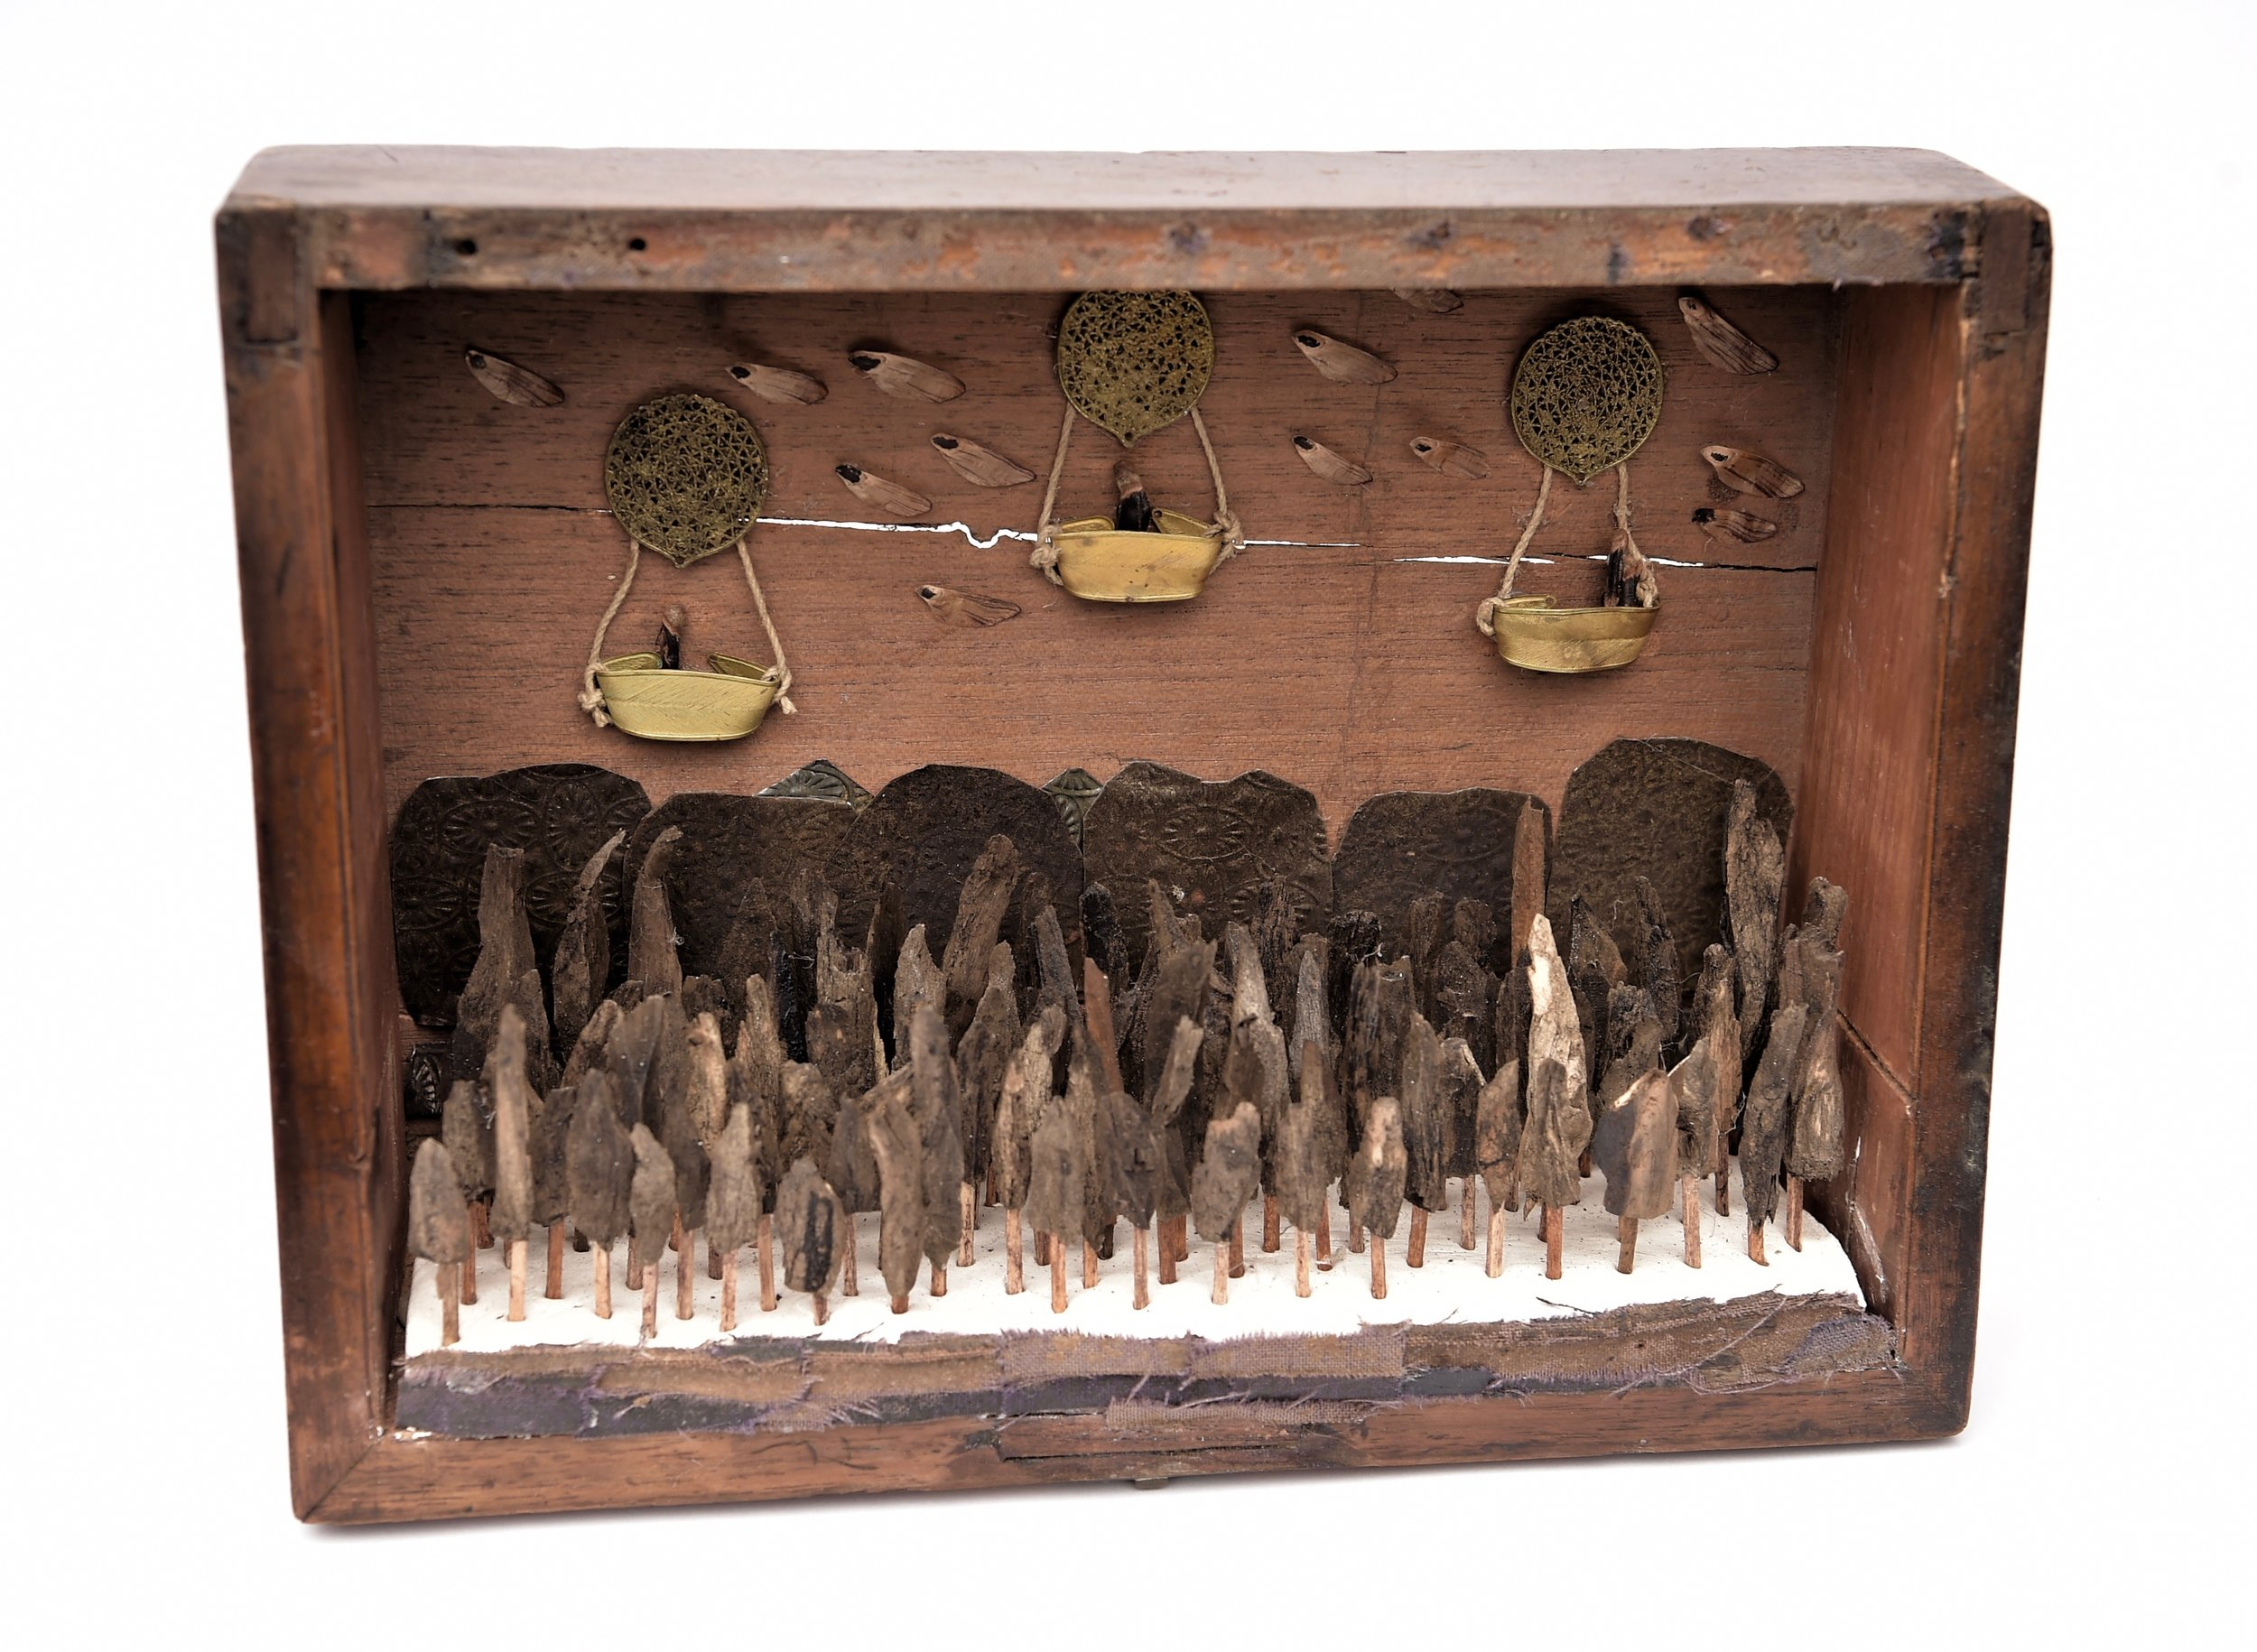 an old wooden box filled with broken bits of bark making up a forest. hot air balloons made out of found objects float above it.